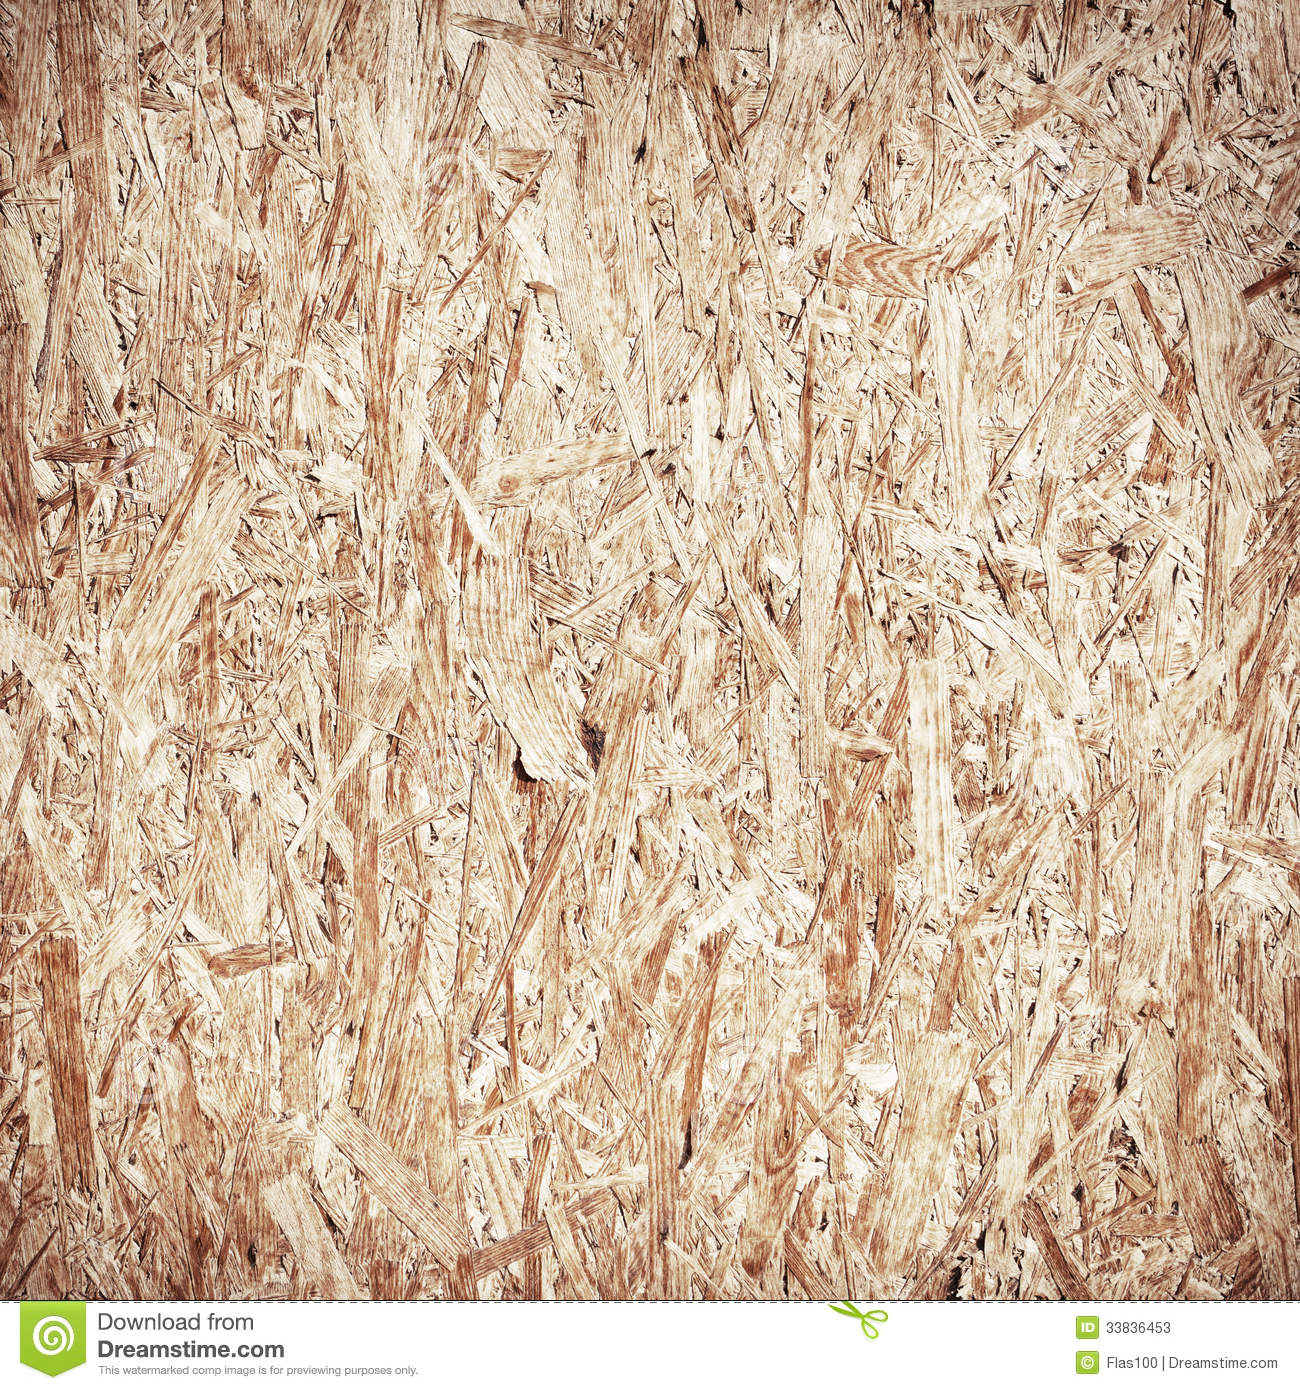 Recycled compressed wood chippings board stock photos for Recycled wood board